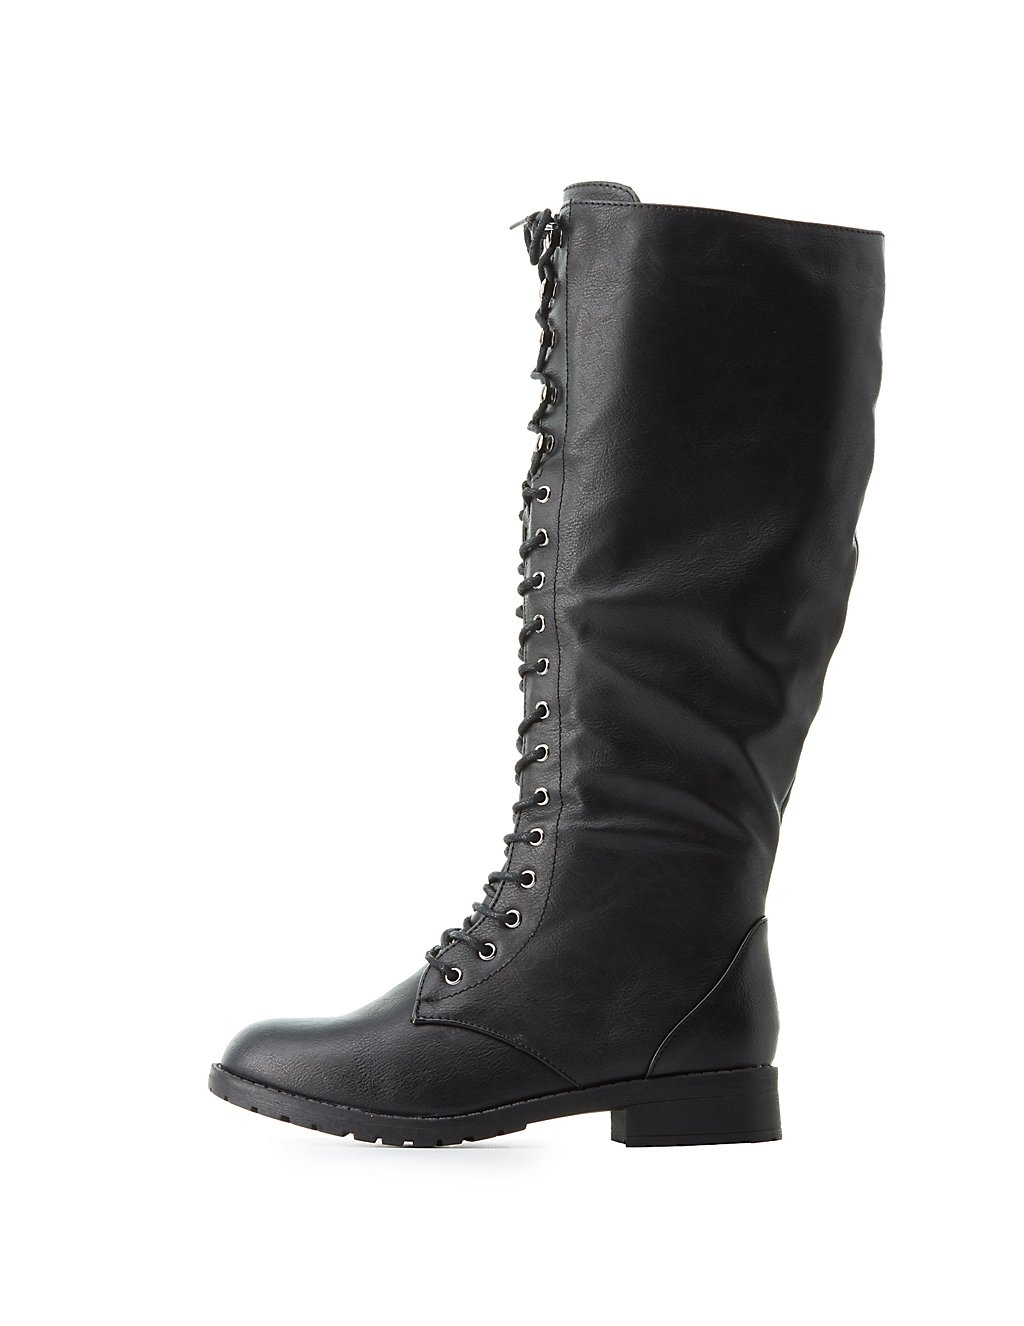 Lace-Up Knee-High Combat Boots   Charlotte Russe